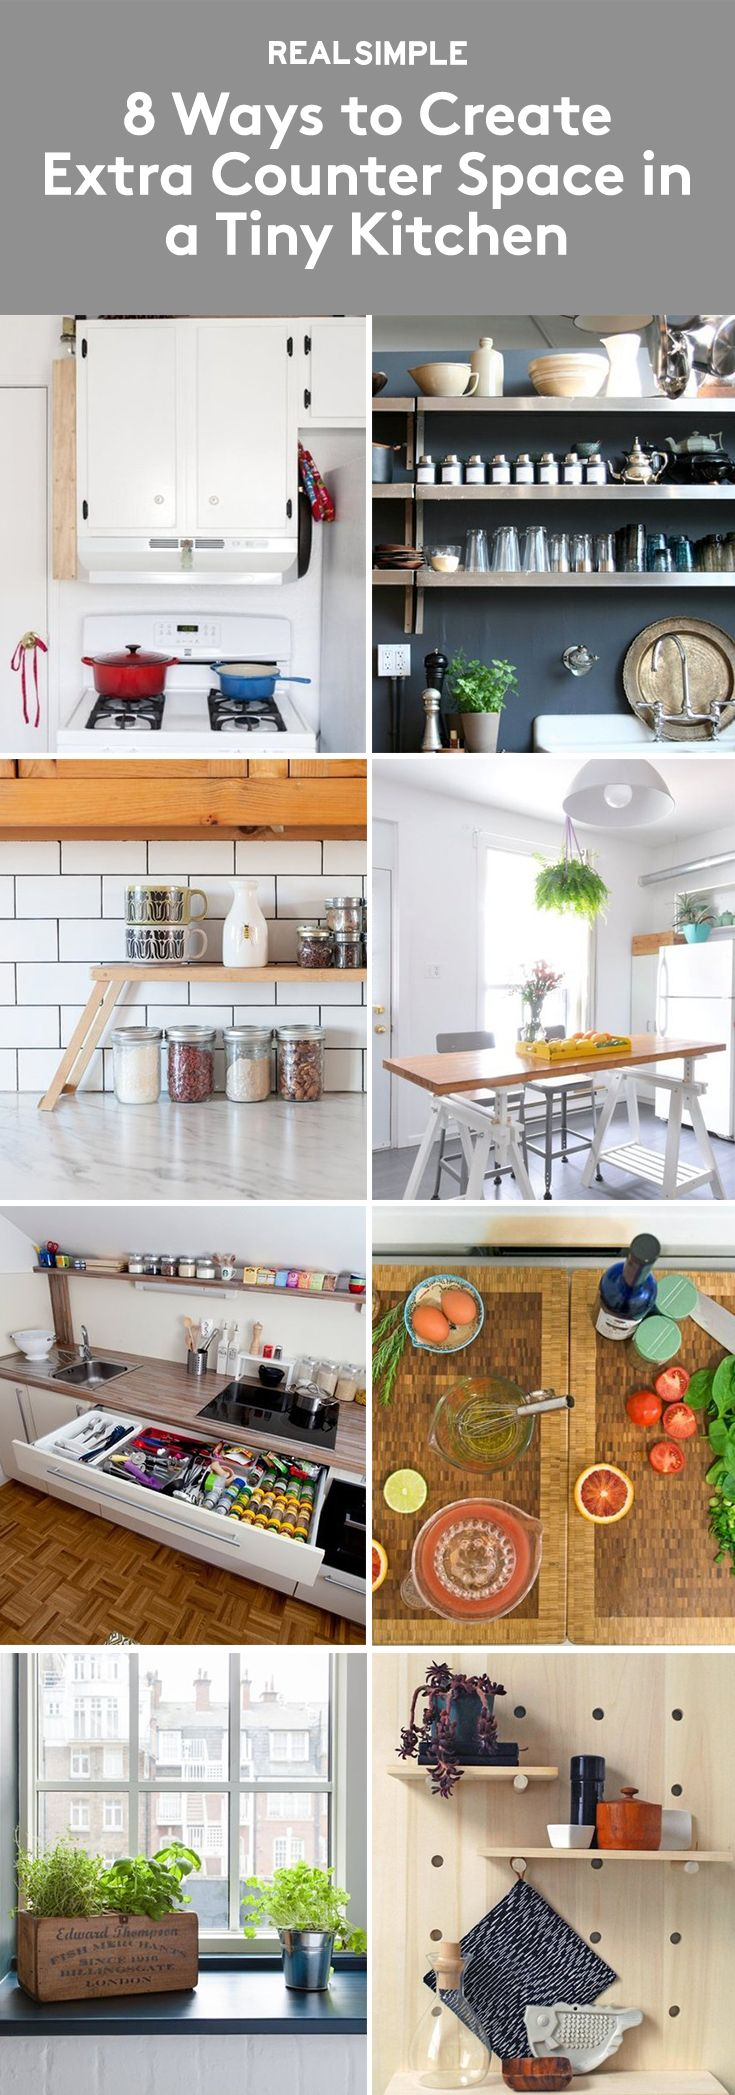 8 Ways To Create Extra Counter Space In A Tiny Kitchen | Try These Space